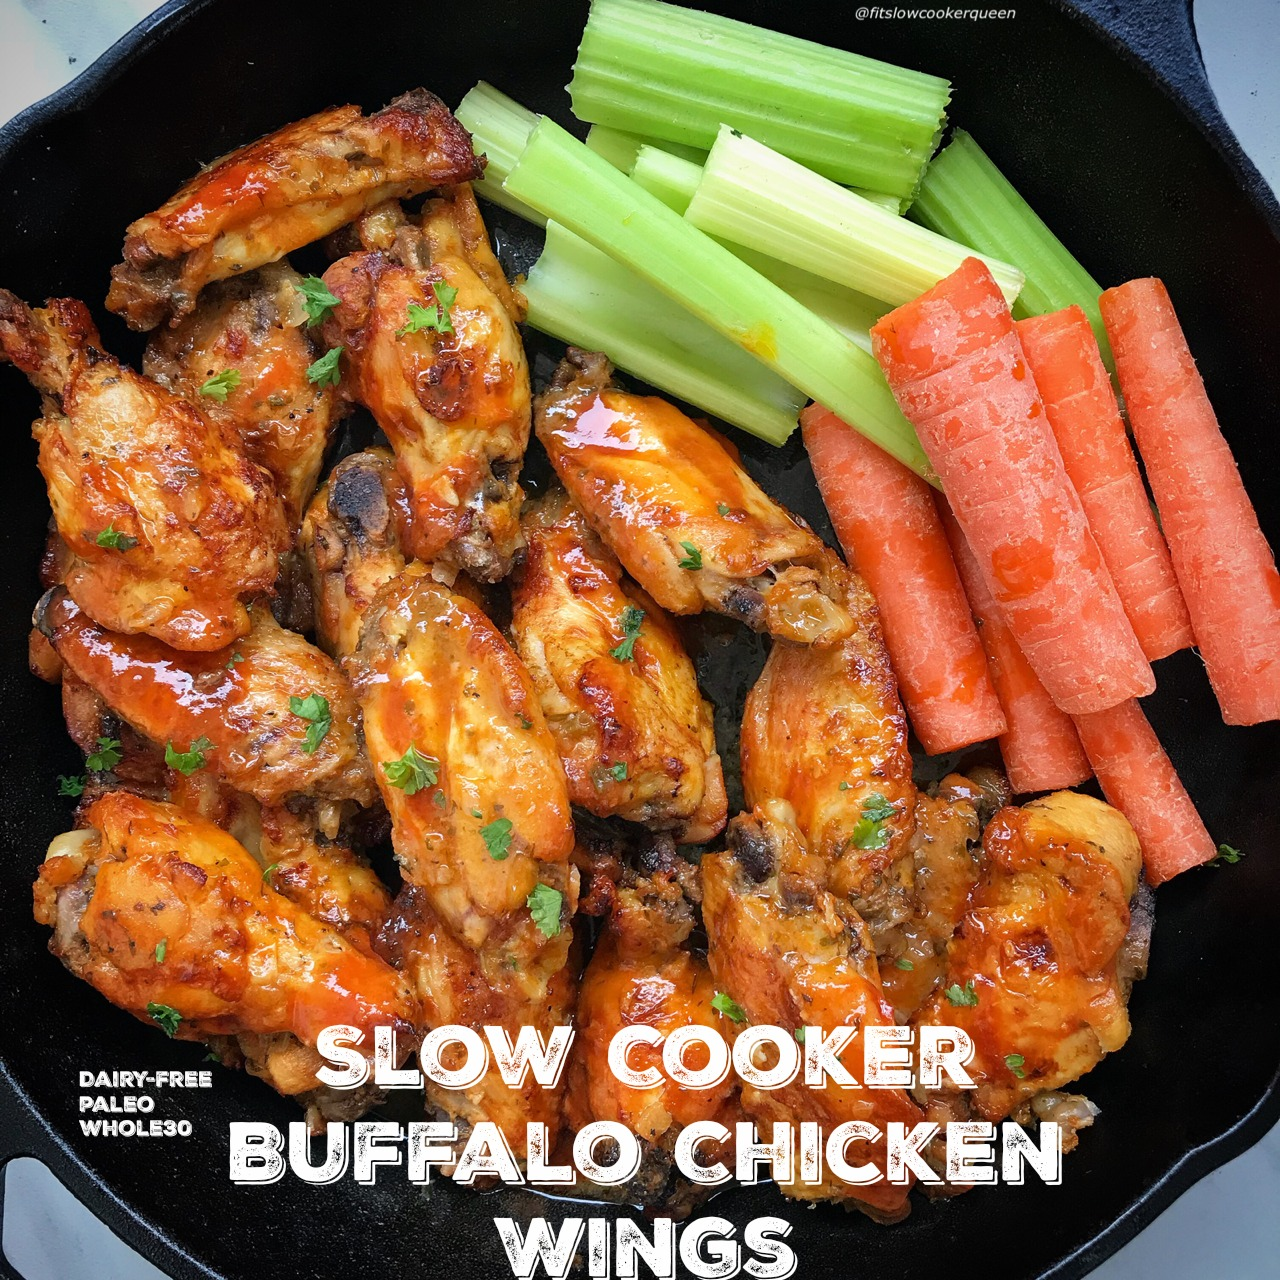 Here are healthy slow cooker buffalo chicken wings that are lactose-free, paleo, whole30, and use a homemade ranch mix! Serve these wings at your next game-day gathering, potluck or weekday snack.